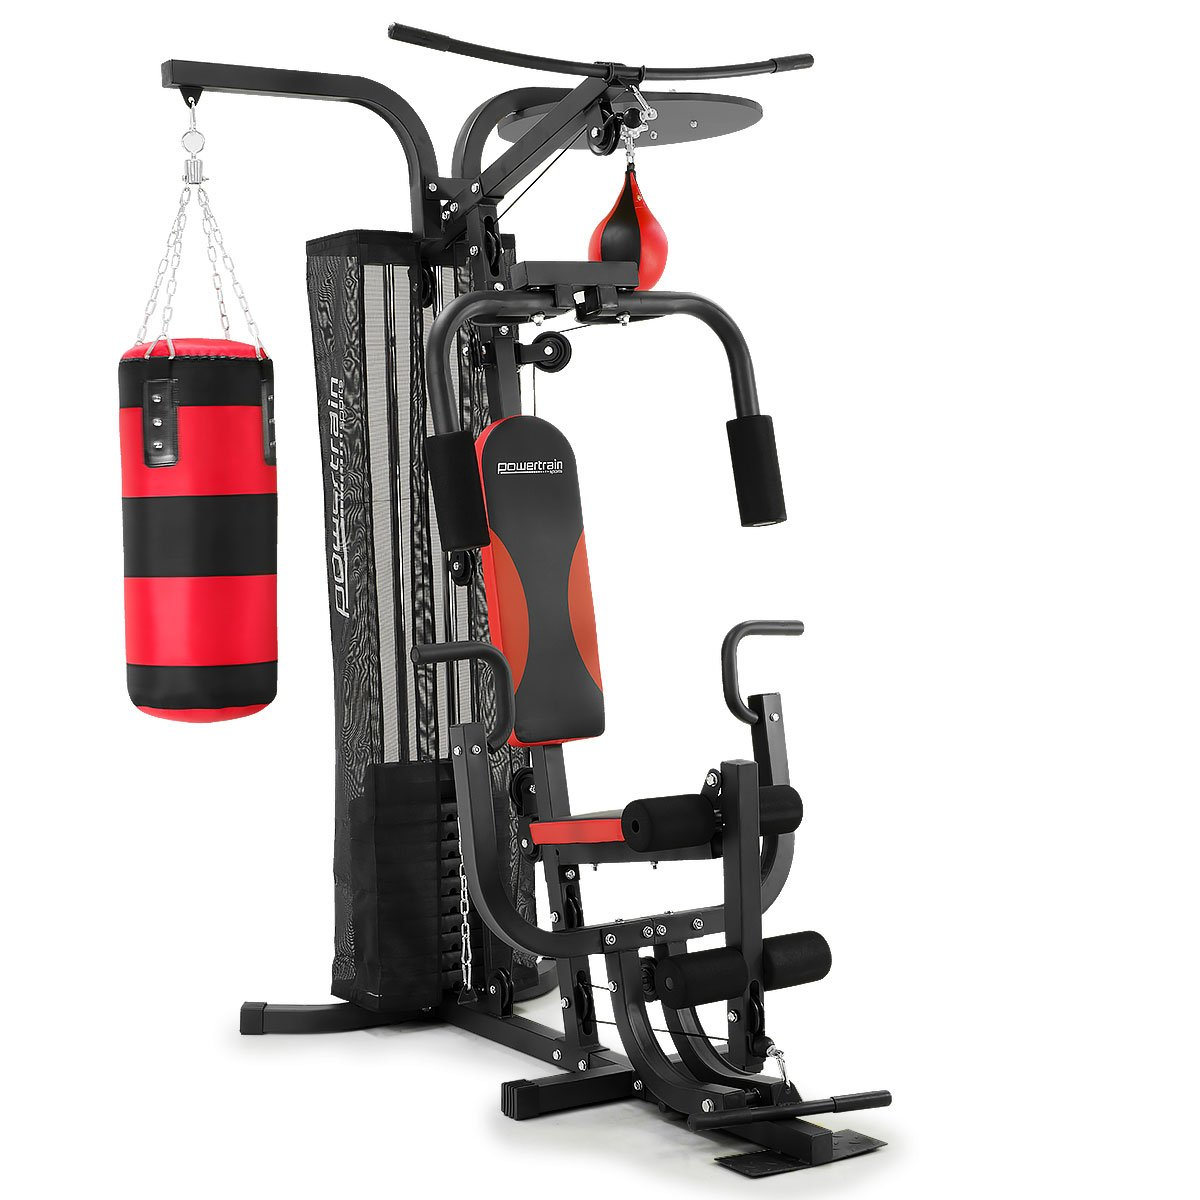 New multistation home gym exercise equipment total workout fitness